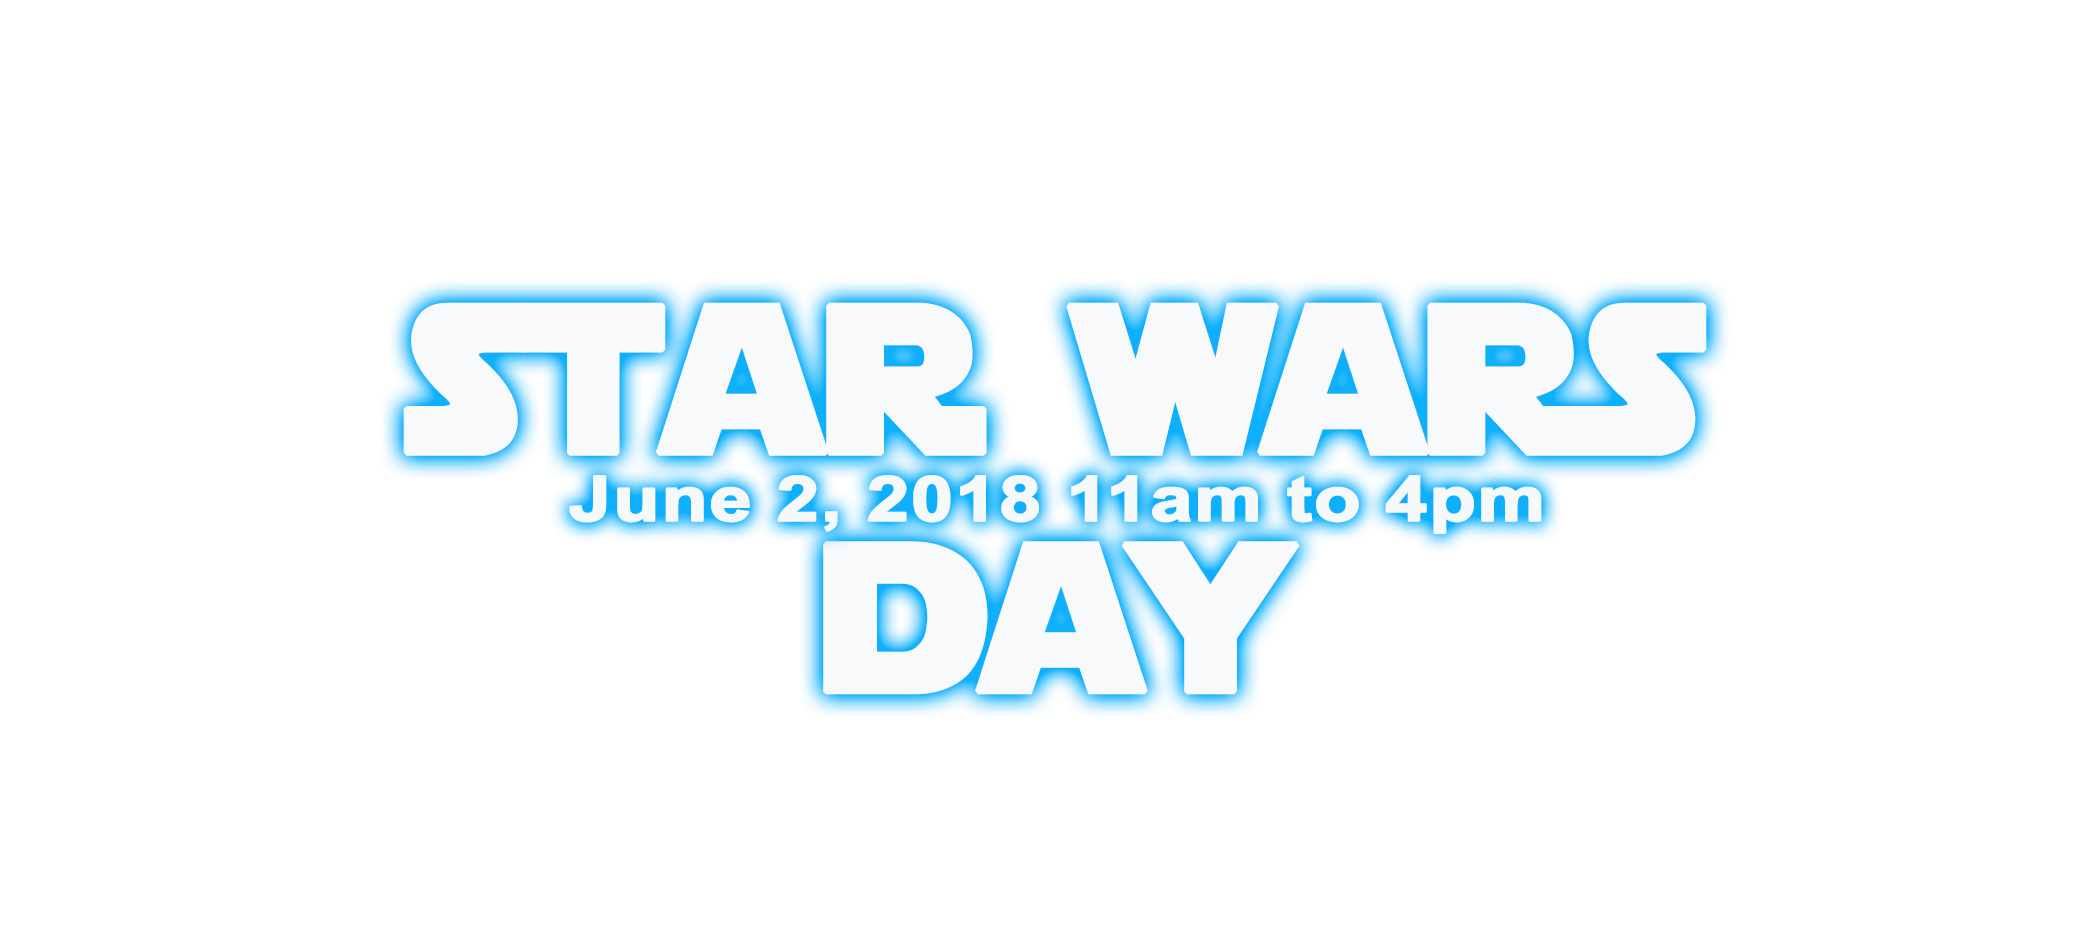 Star wars day clipart graphic freeuse download Top Star Wars Day HD Images Photos & Pictures Free Downloads graphic freeuse download